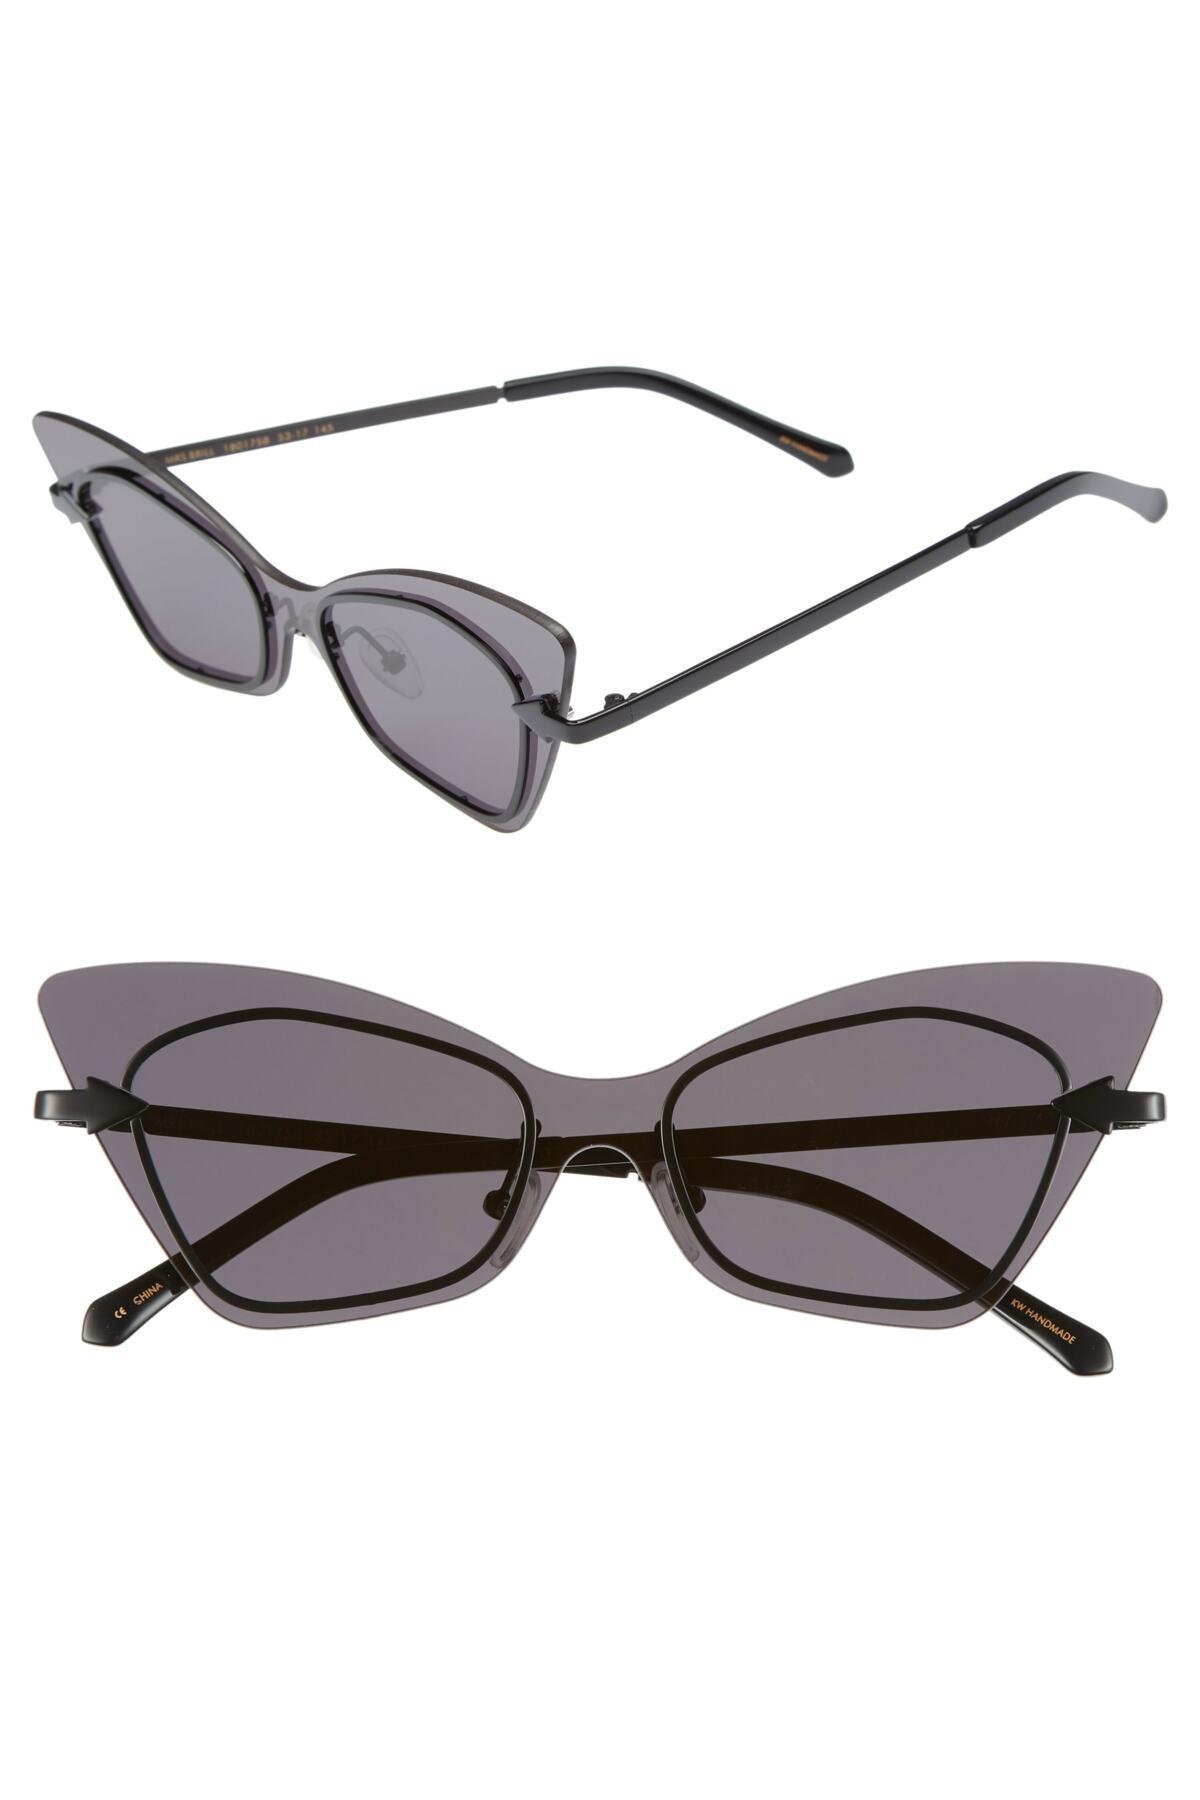 cba74b0ee8a0 Lyst - Karen Walker Mrs. Brill 53mm Cat Eye Sunglasses in Black